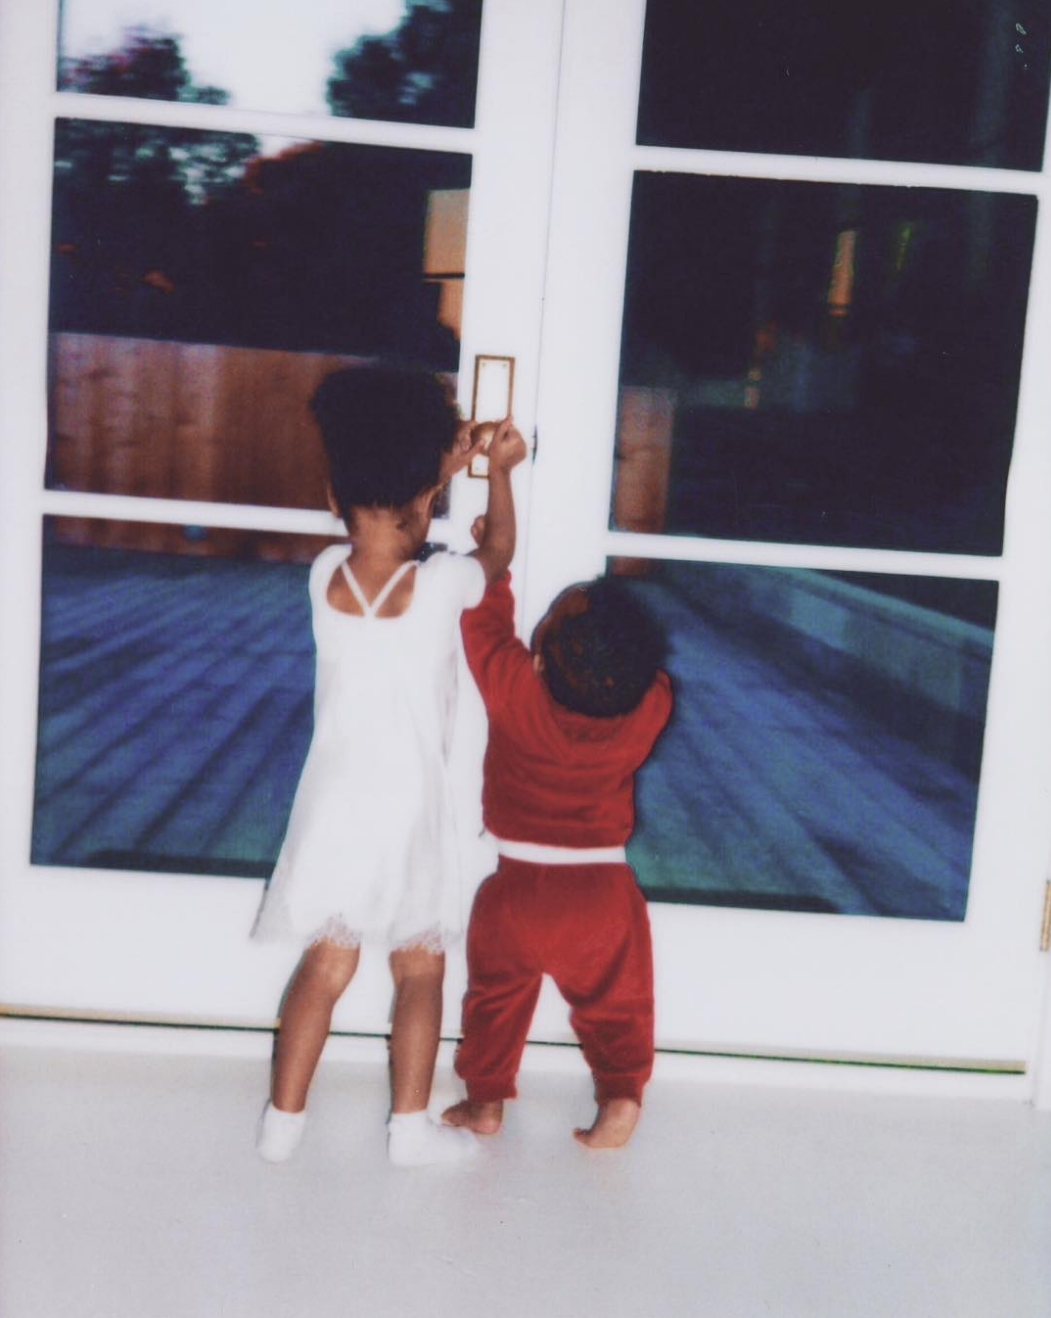 Kim Kardashian shared a pic of North helped her little brother Saint open a door in honor of National Siblings Day.